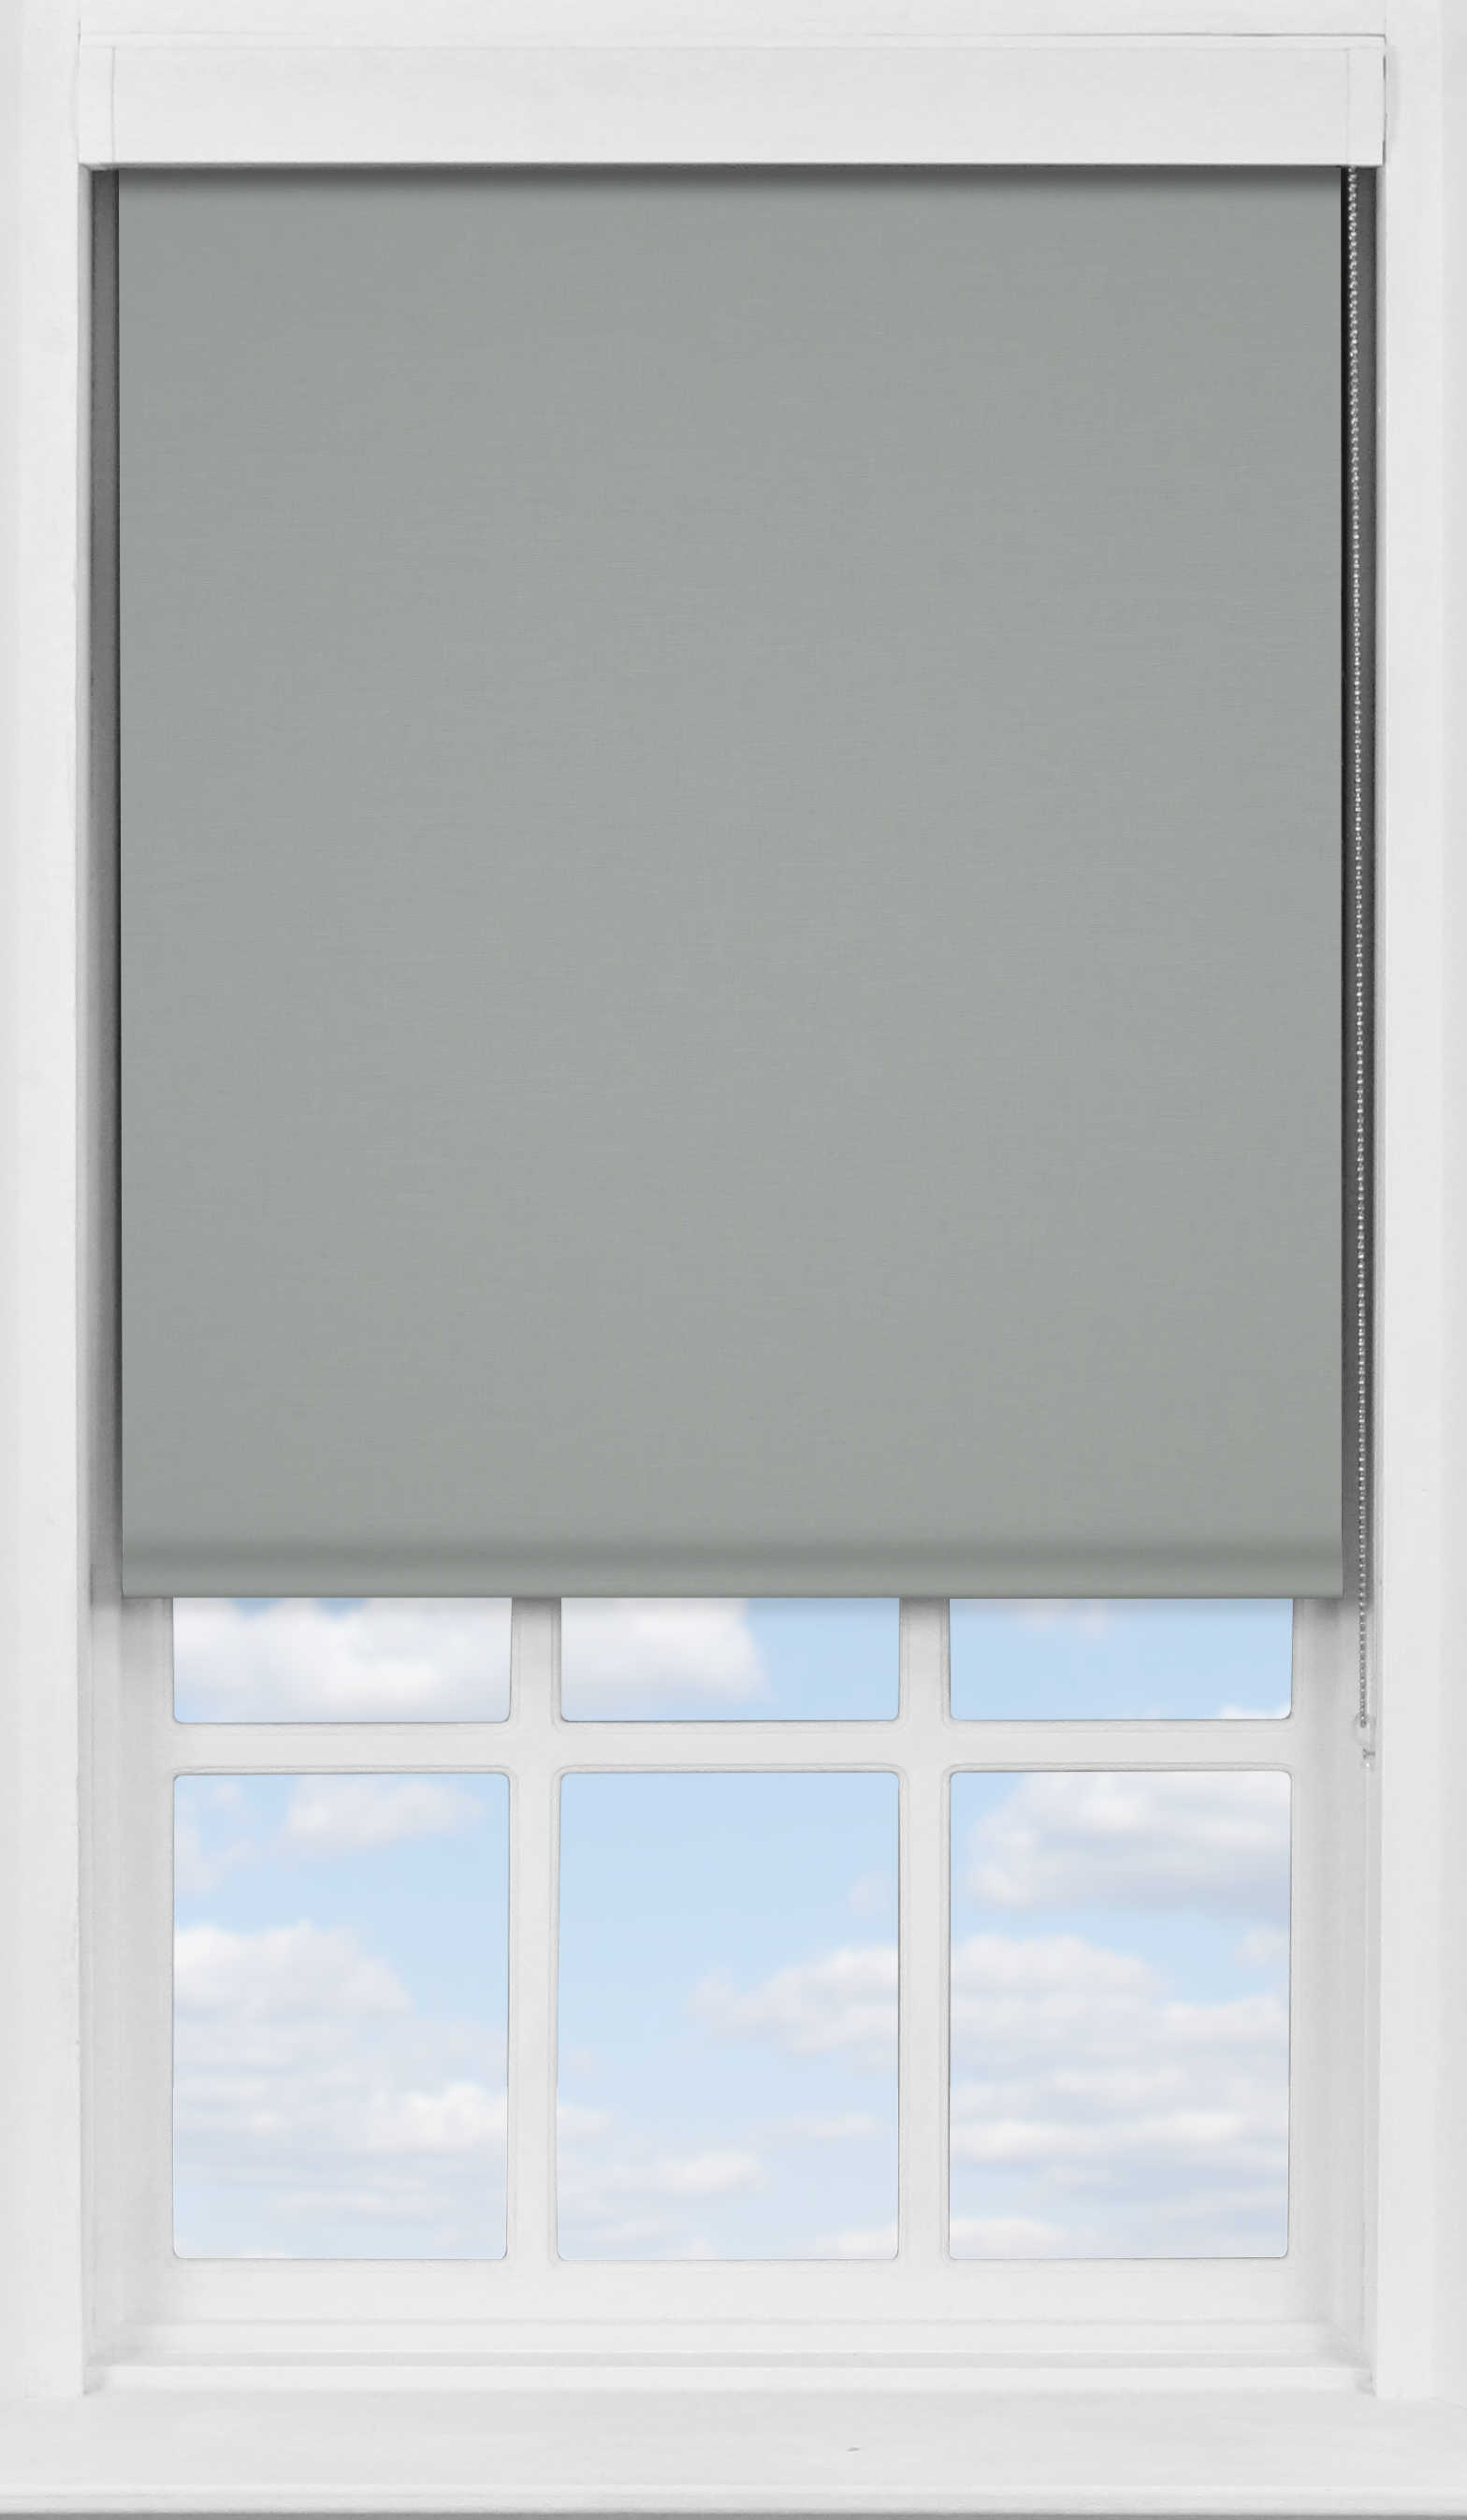 Premium Roller Blind in Marl Grey